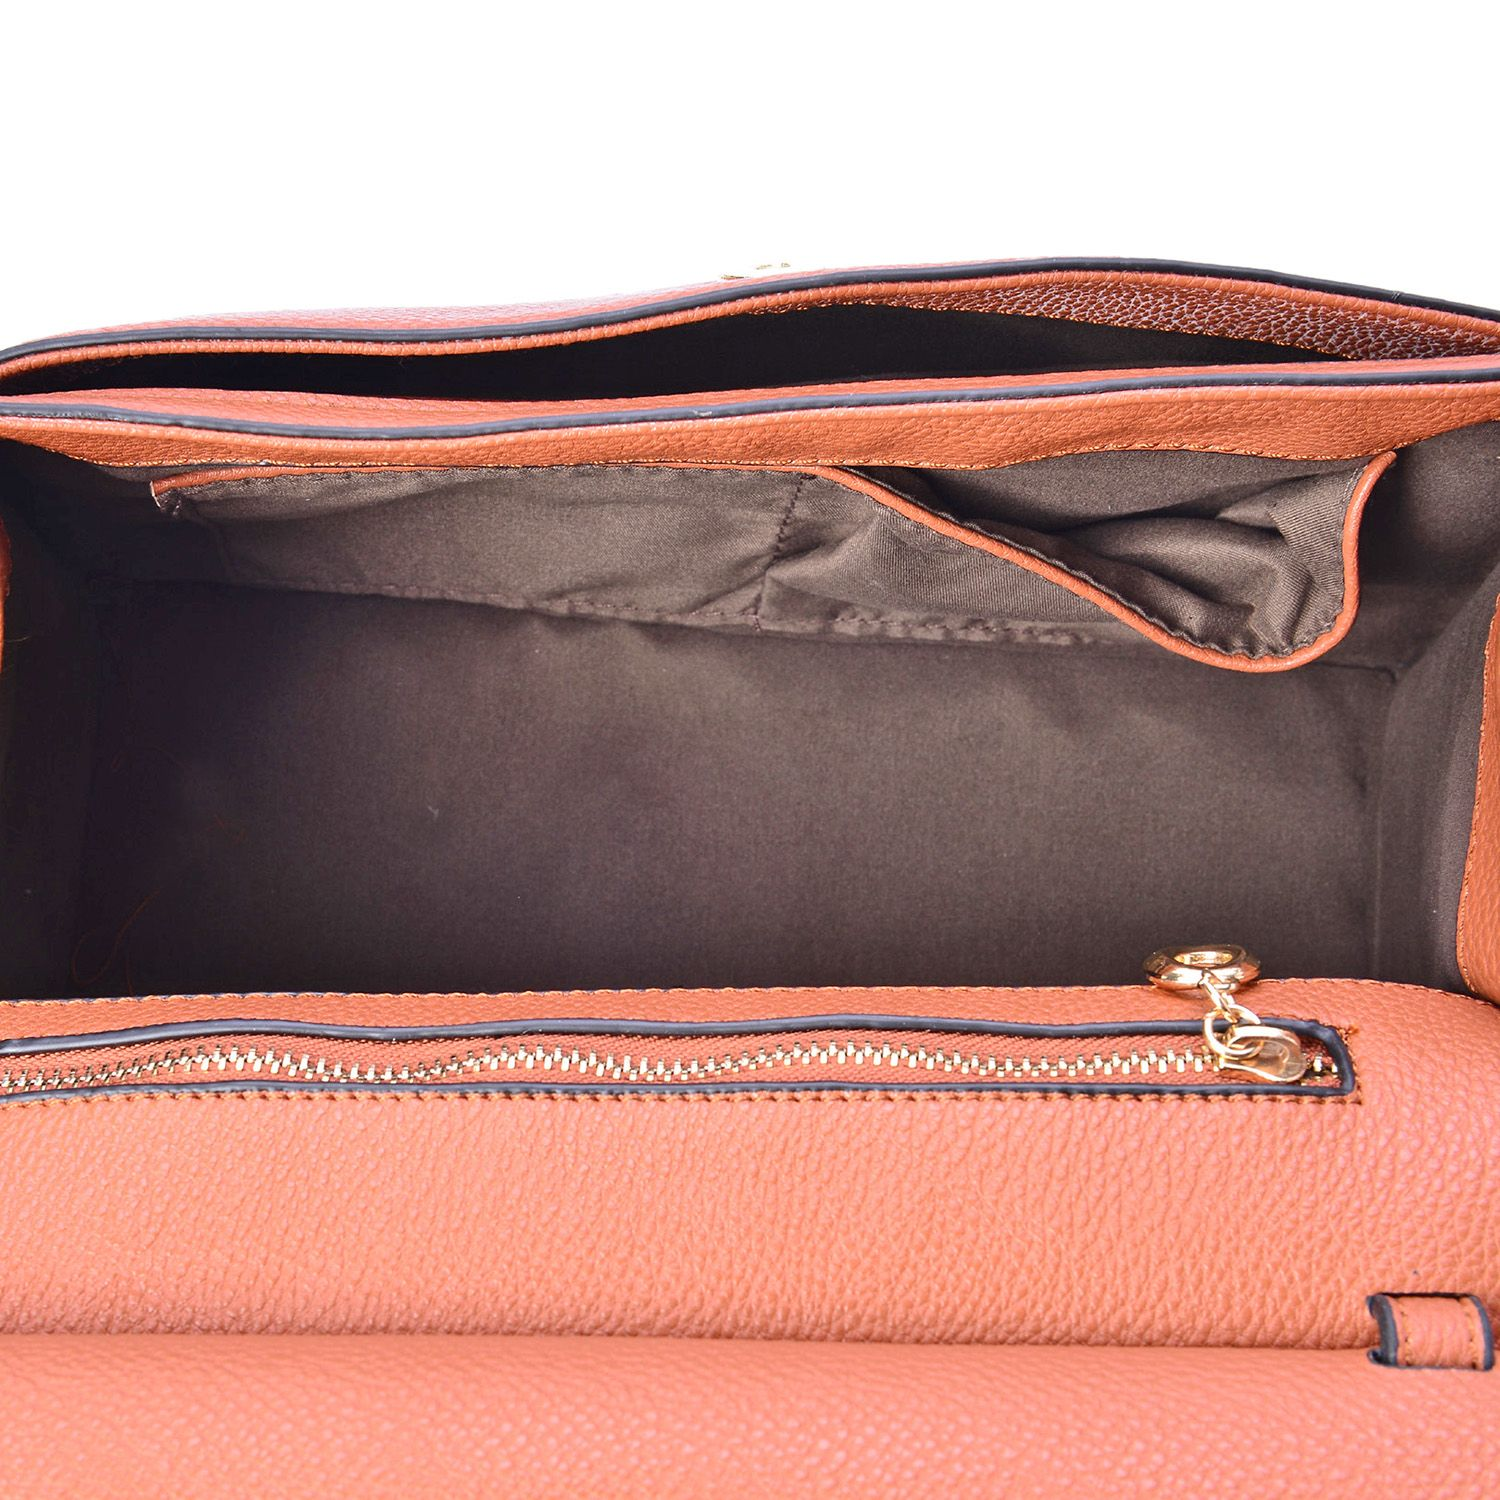 J Francis - Camel Faux Leather Crossbody Bag with Tassel (11x5x8 in)